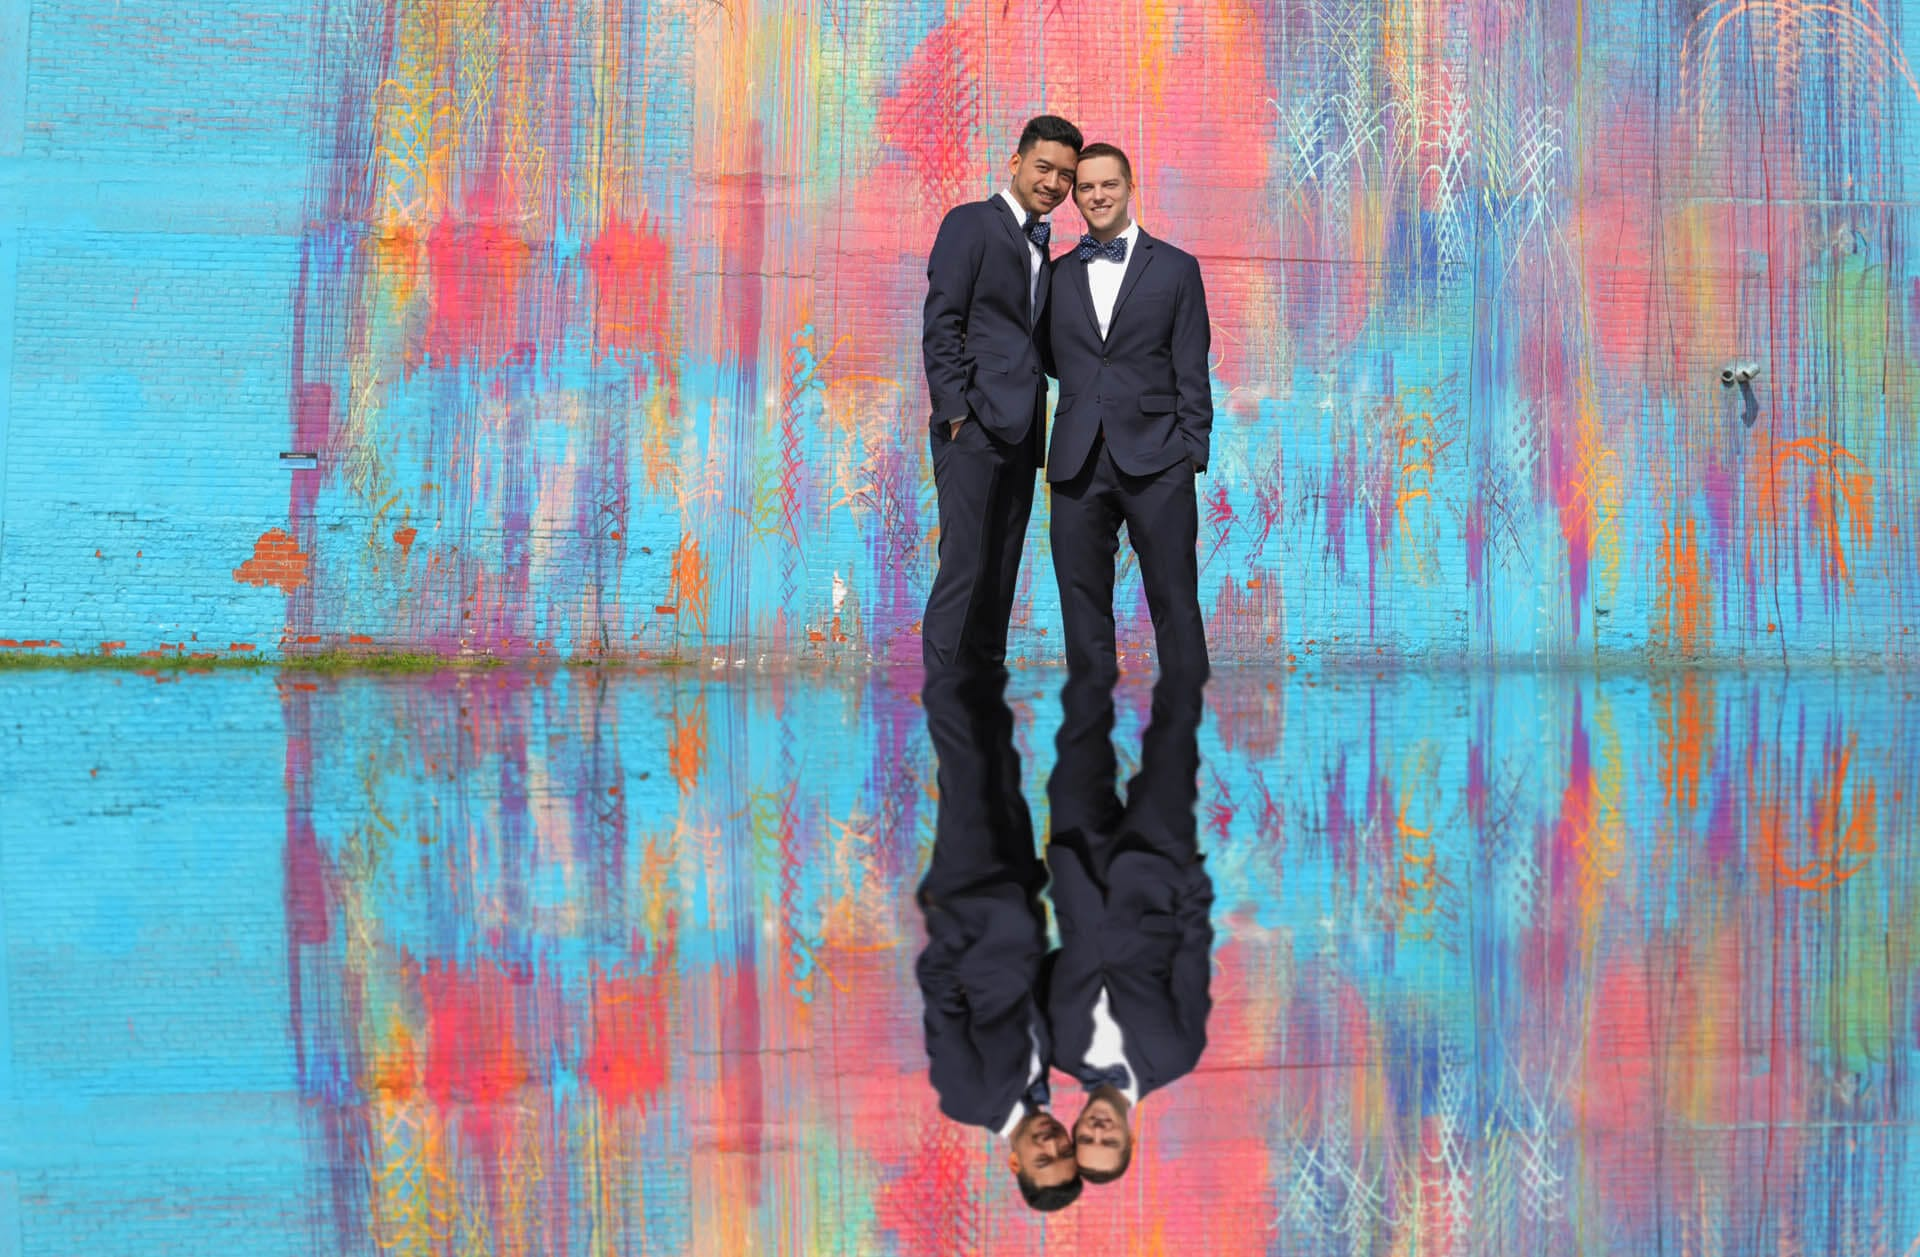 Two grooms are reflected in a puddle with the